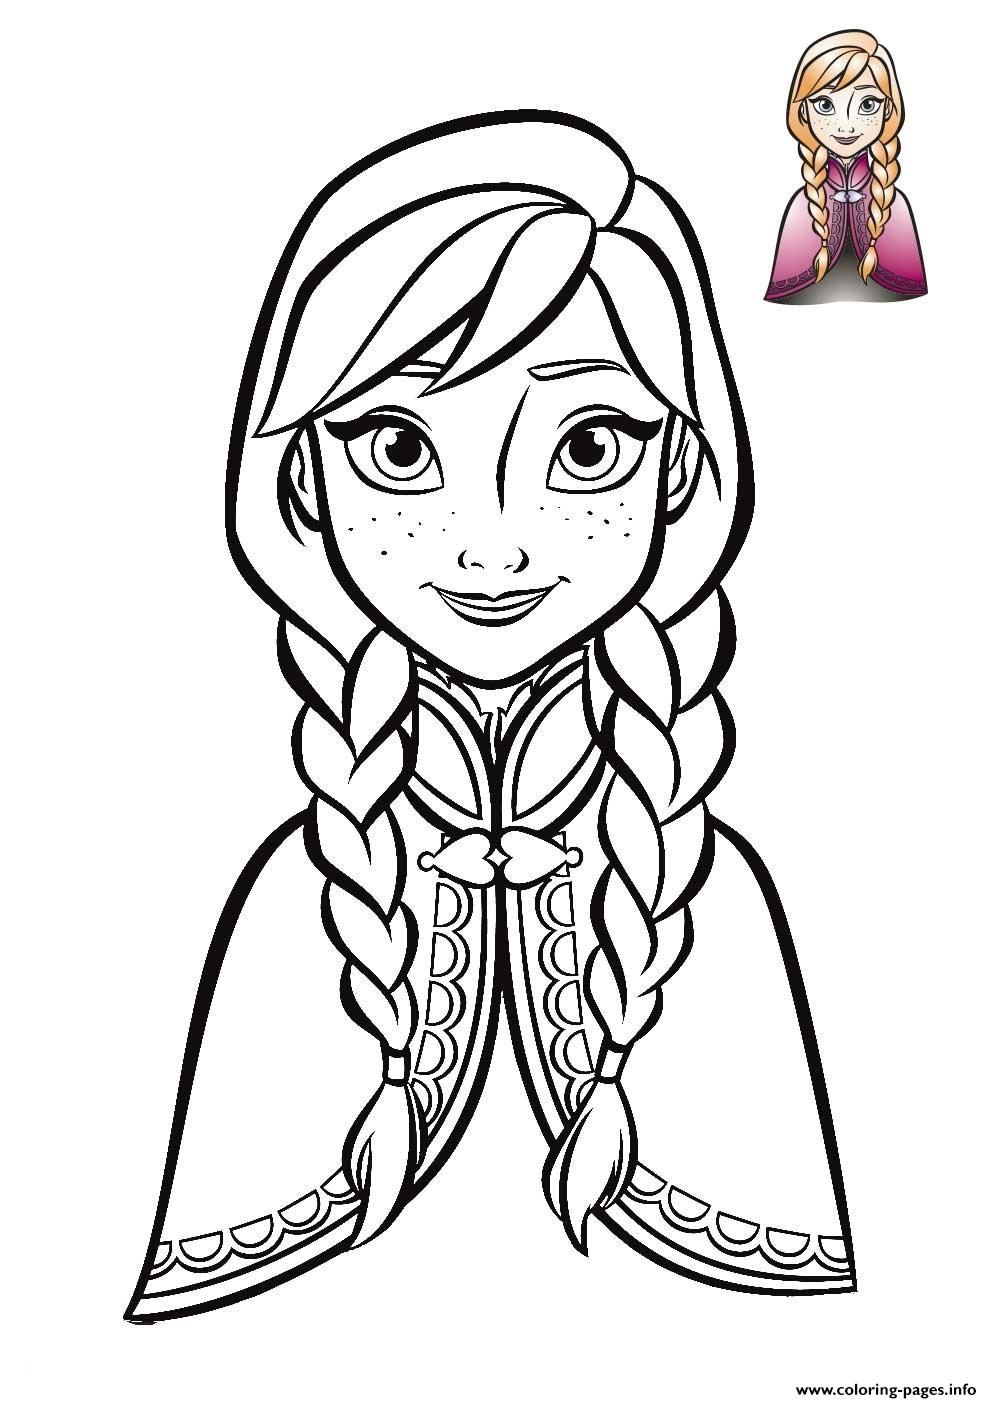 Anna Coloring Pages Anna Frozen Face 2018 Coloring Pages Printable Entitlementtrap Com Disney Princess Coloring Pages Elsa Coloring Pages Disney Coloring Pages